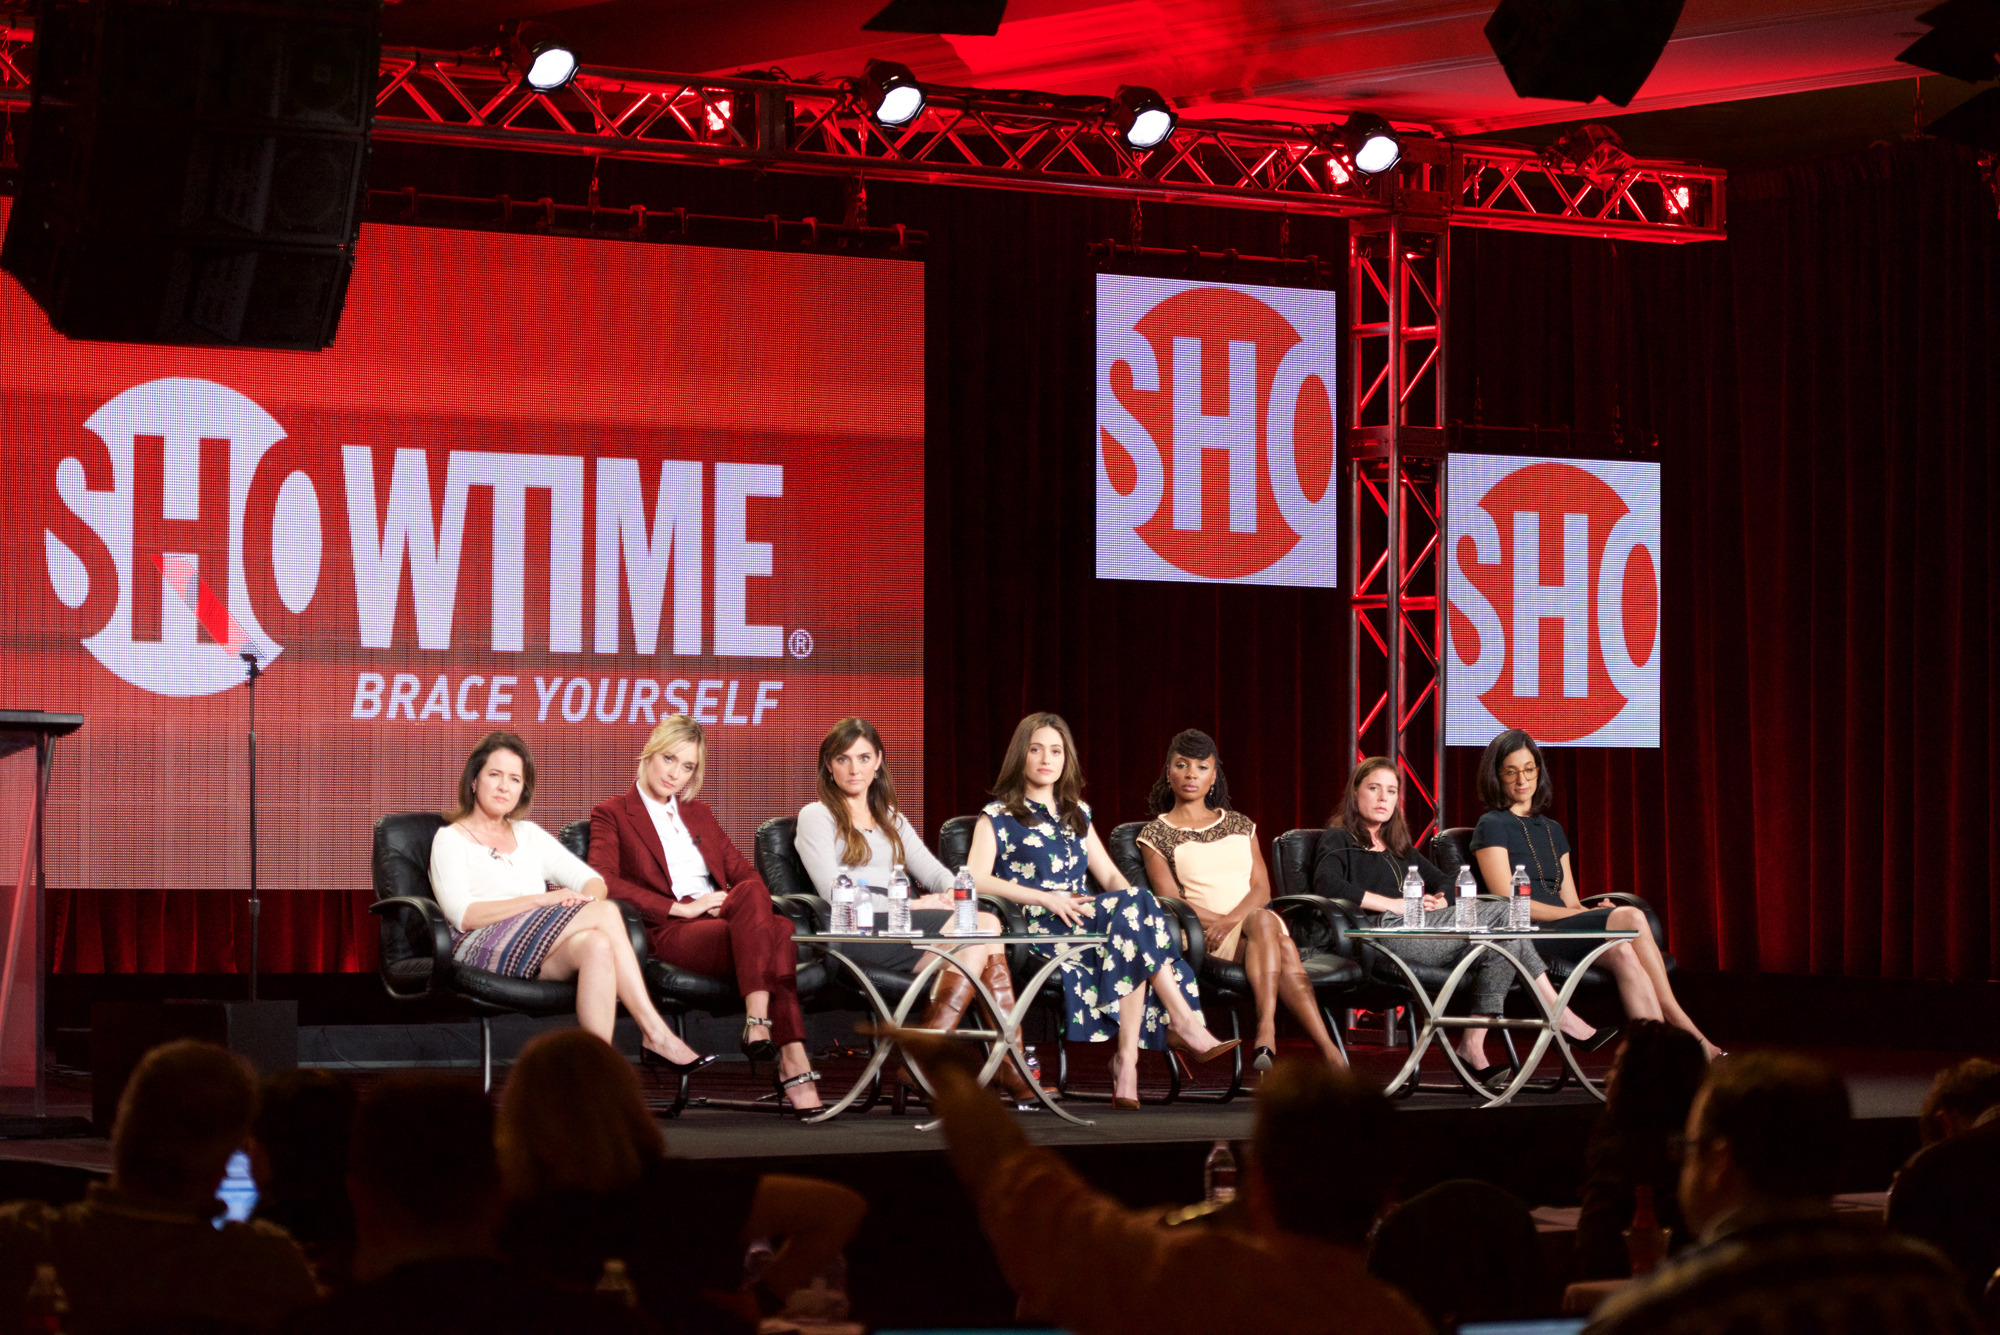 Screenwriter Michelle Ashford, Actress Caitlin FitzGerald, Executive Producer Nancy M. Pimental, Actress Emmy Rossum, Actress Shanola Hampton, Actress Maura Tierney, and Creator & Executive Producer Sarah Treem speak onstage during the 'Sexuality And Television: A Female Perspective' panel as part of the CBS/Showtime 2015 Winter Television Critics Association press tour at The Langham Huntington Hotel and Spa on January 12, 2015 in Pasadena, California.